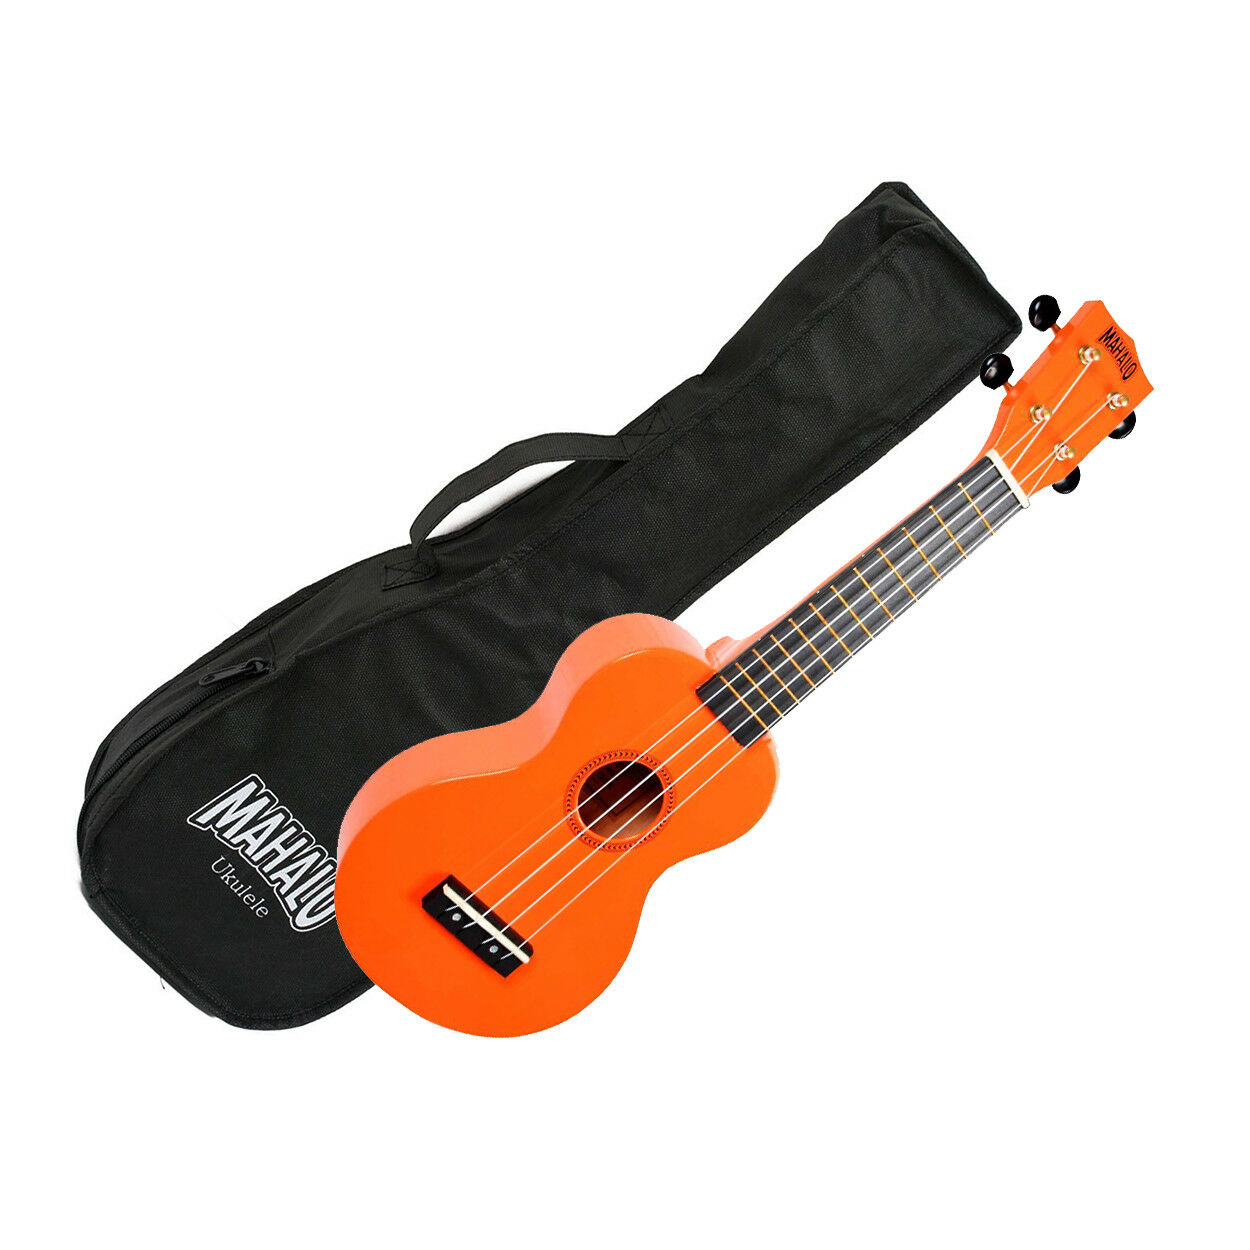 Mahalo MR1-OR Soprano Ukulele w/ Bag - Orange